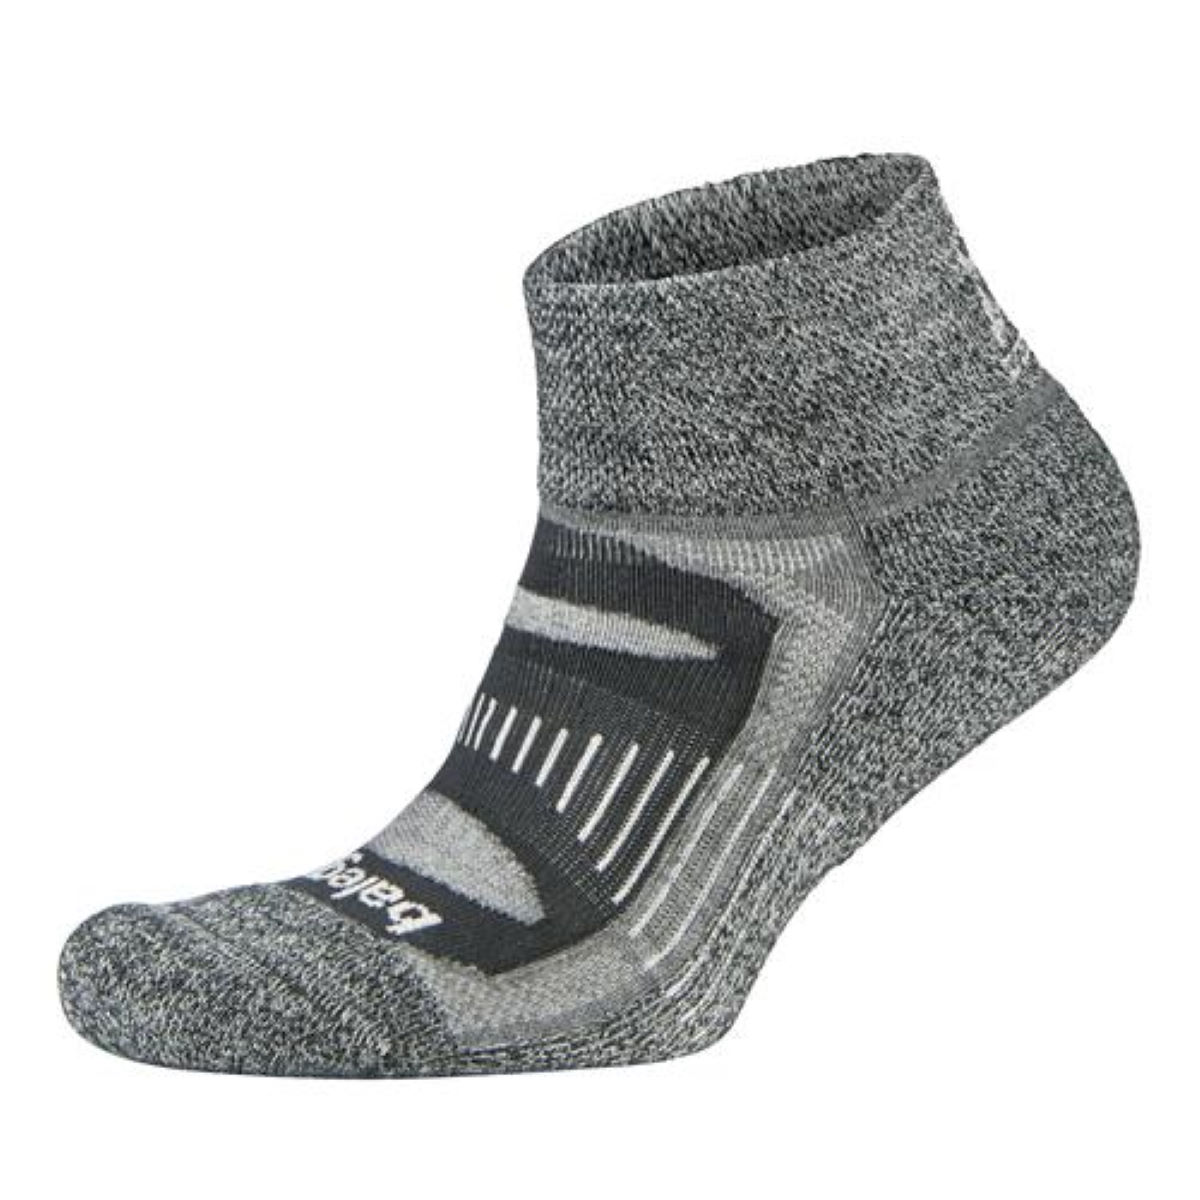 Other Sports Balega Blister Resist Quarter Sock   Running Socks